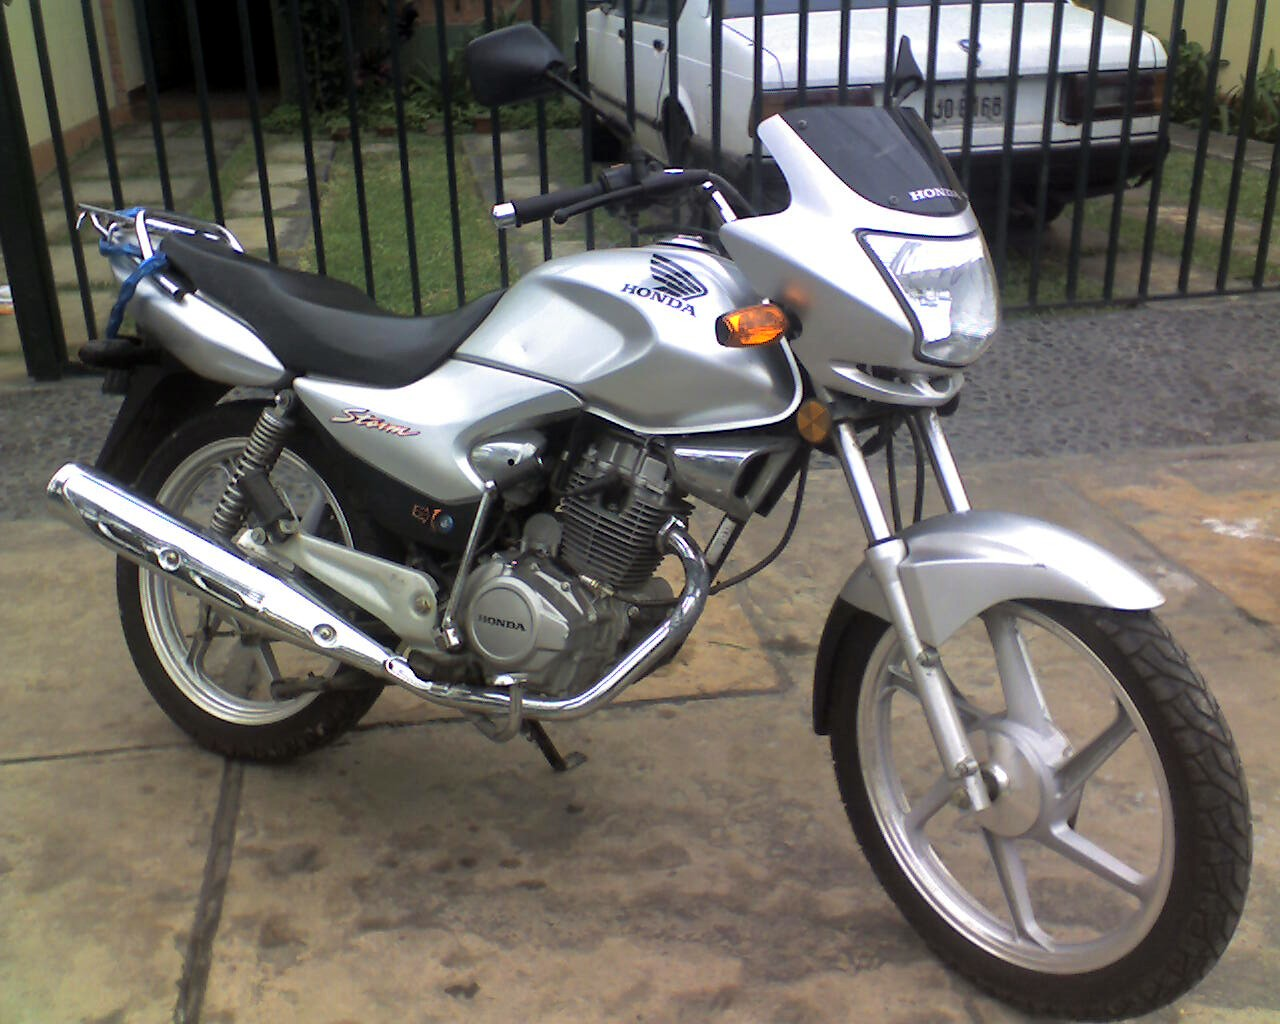 Honda Storm SDH 125 manual taller despiece